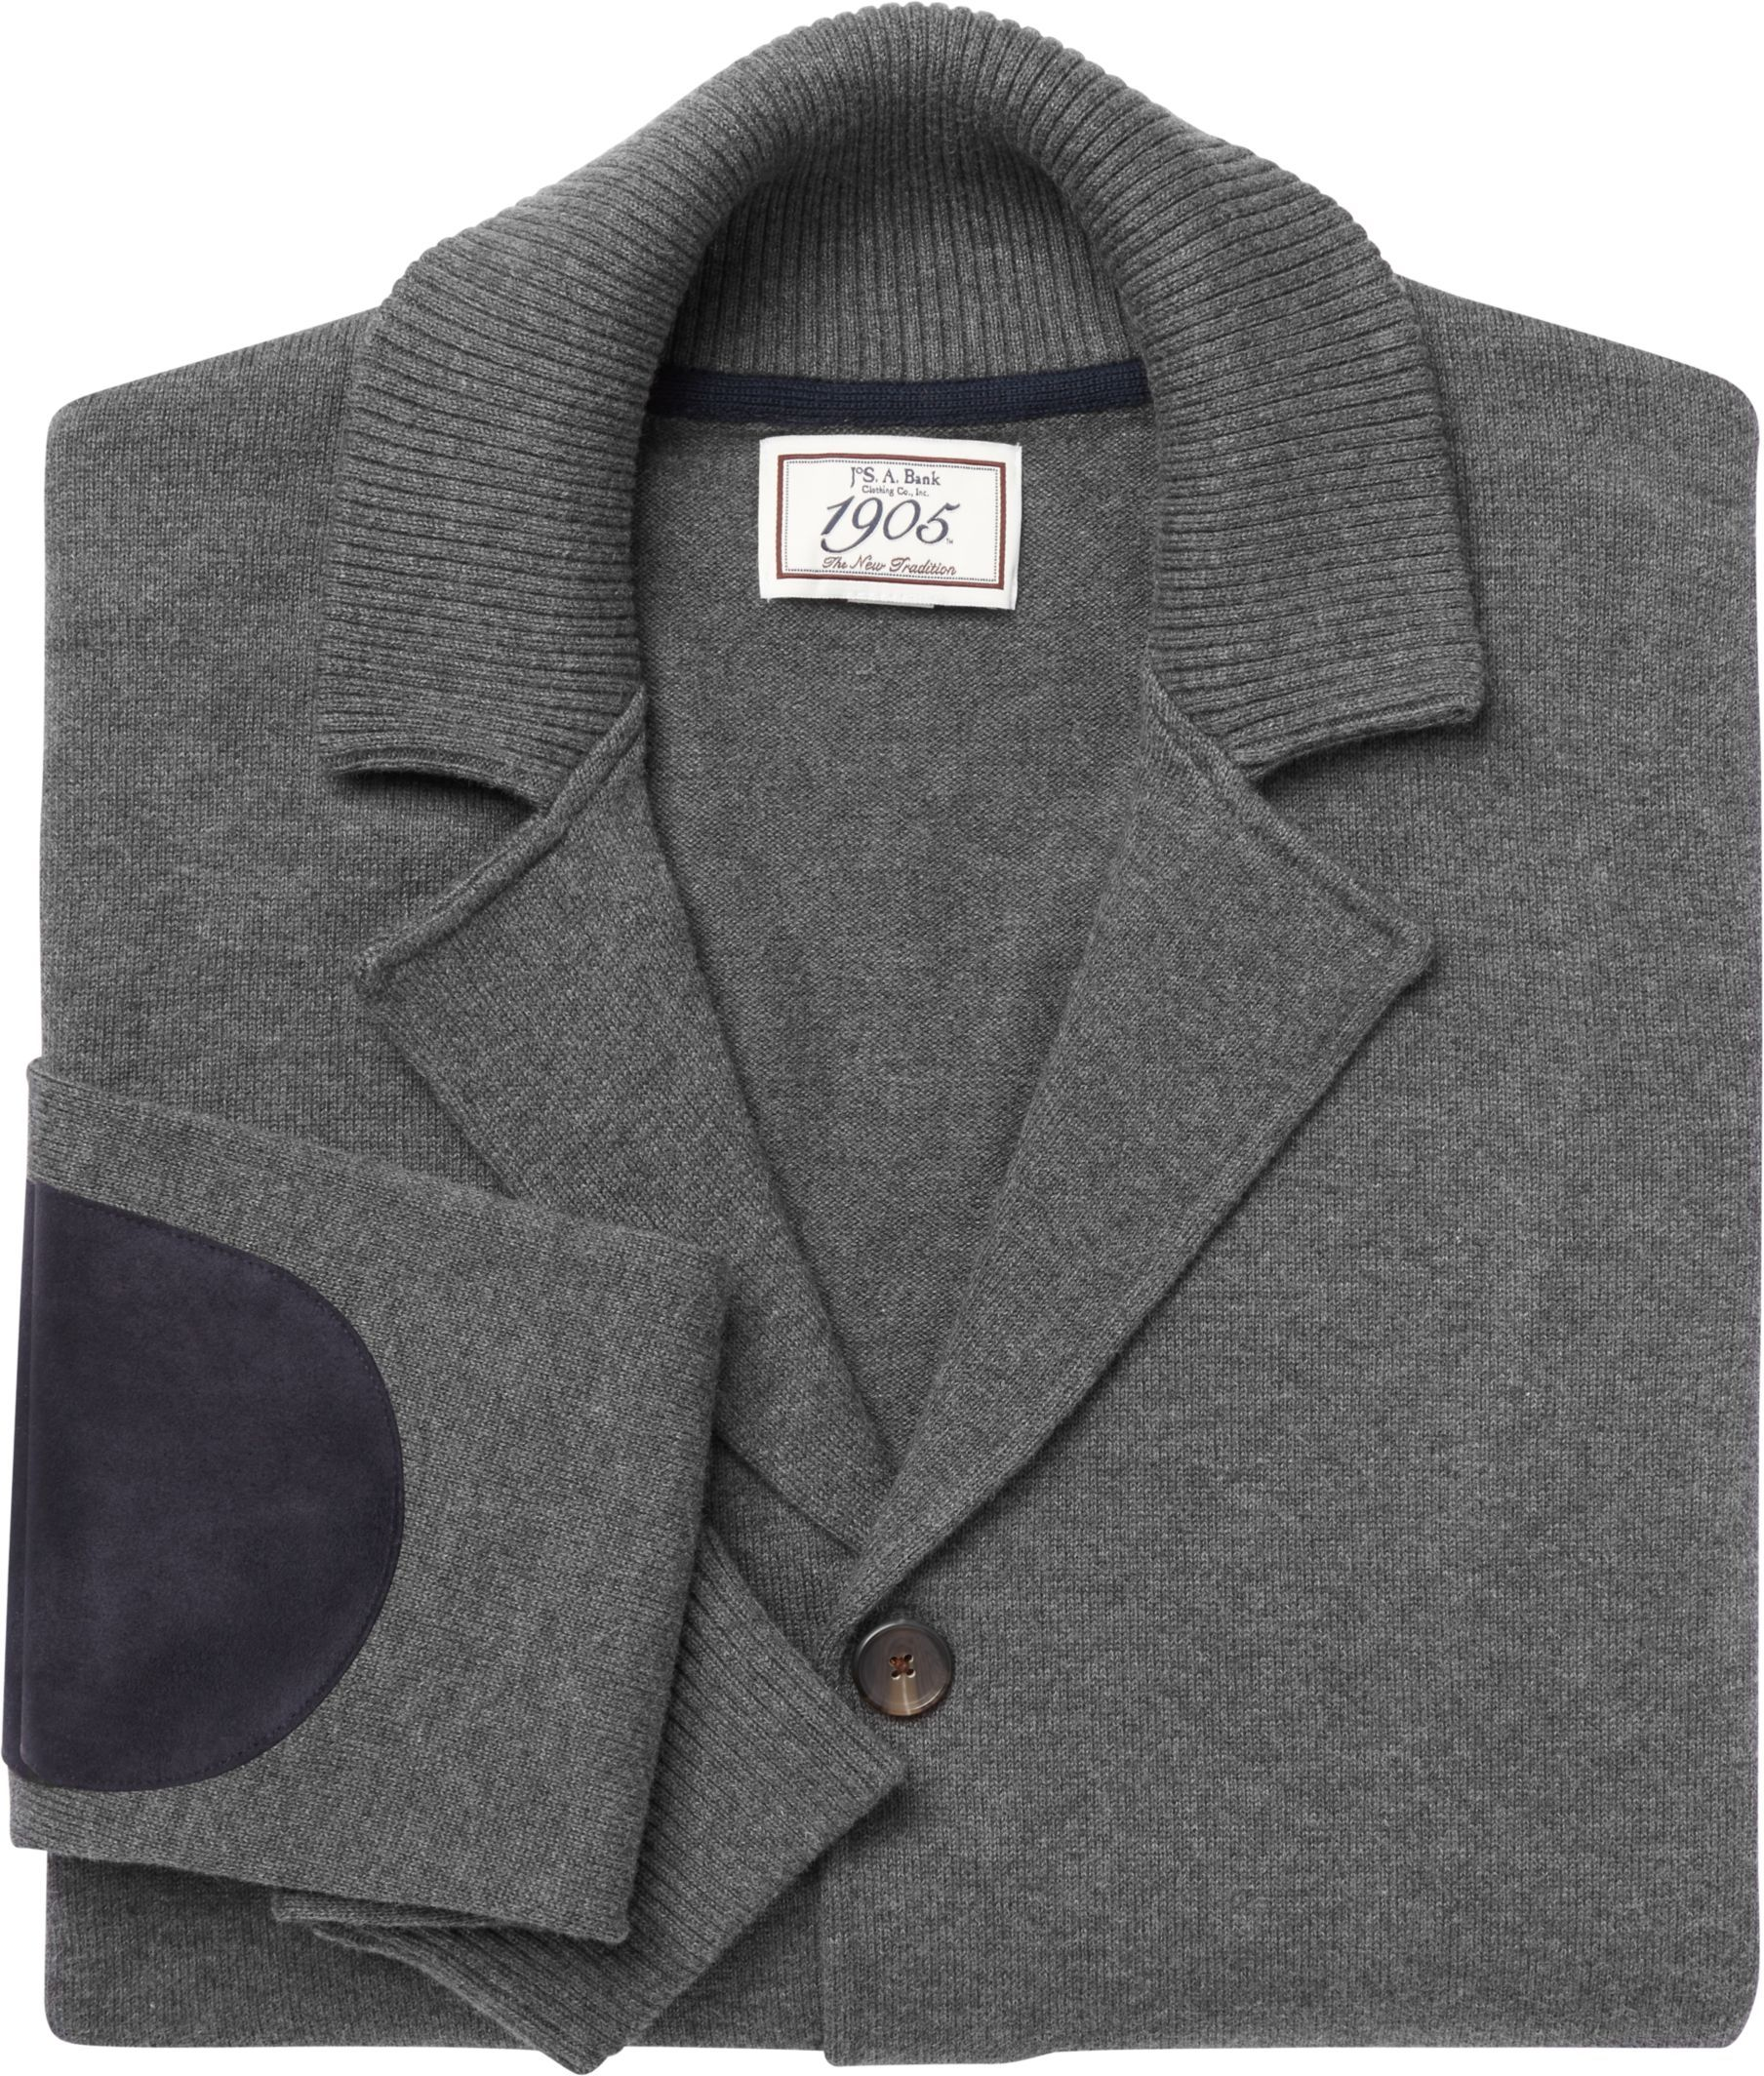 Check This Out 1905 Collection Cardigan Sweater From Jos A Bank Clothiers Josabank Sweater Cardigan Sweaters Men Sweater